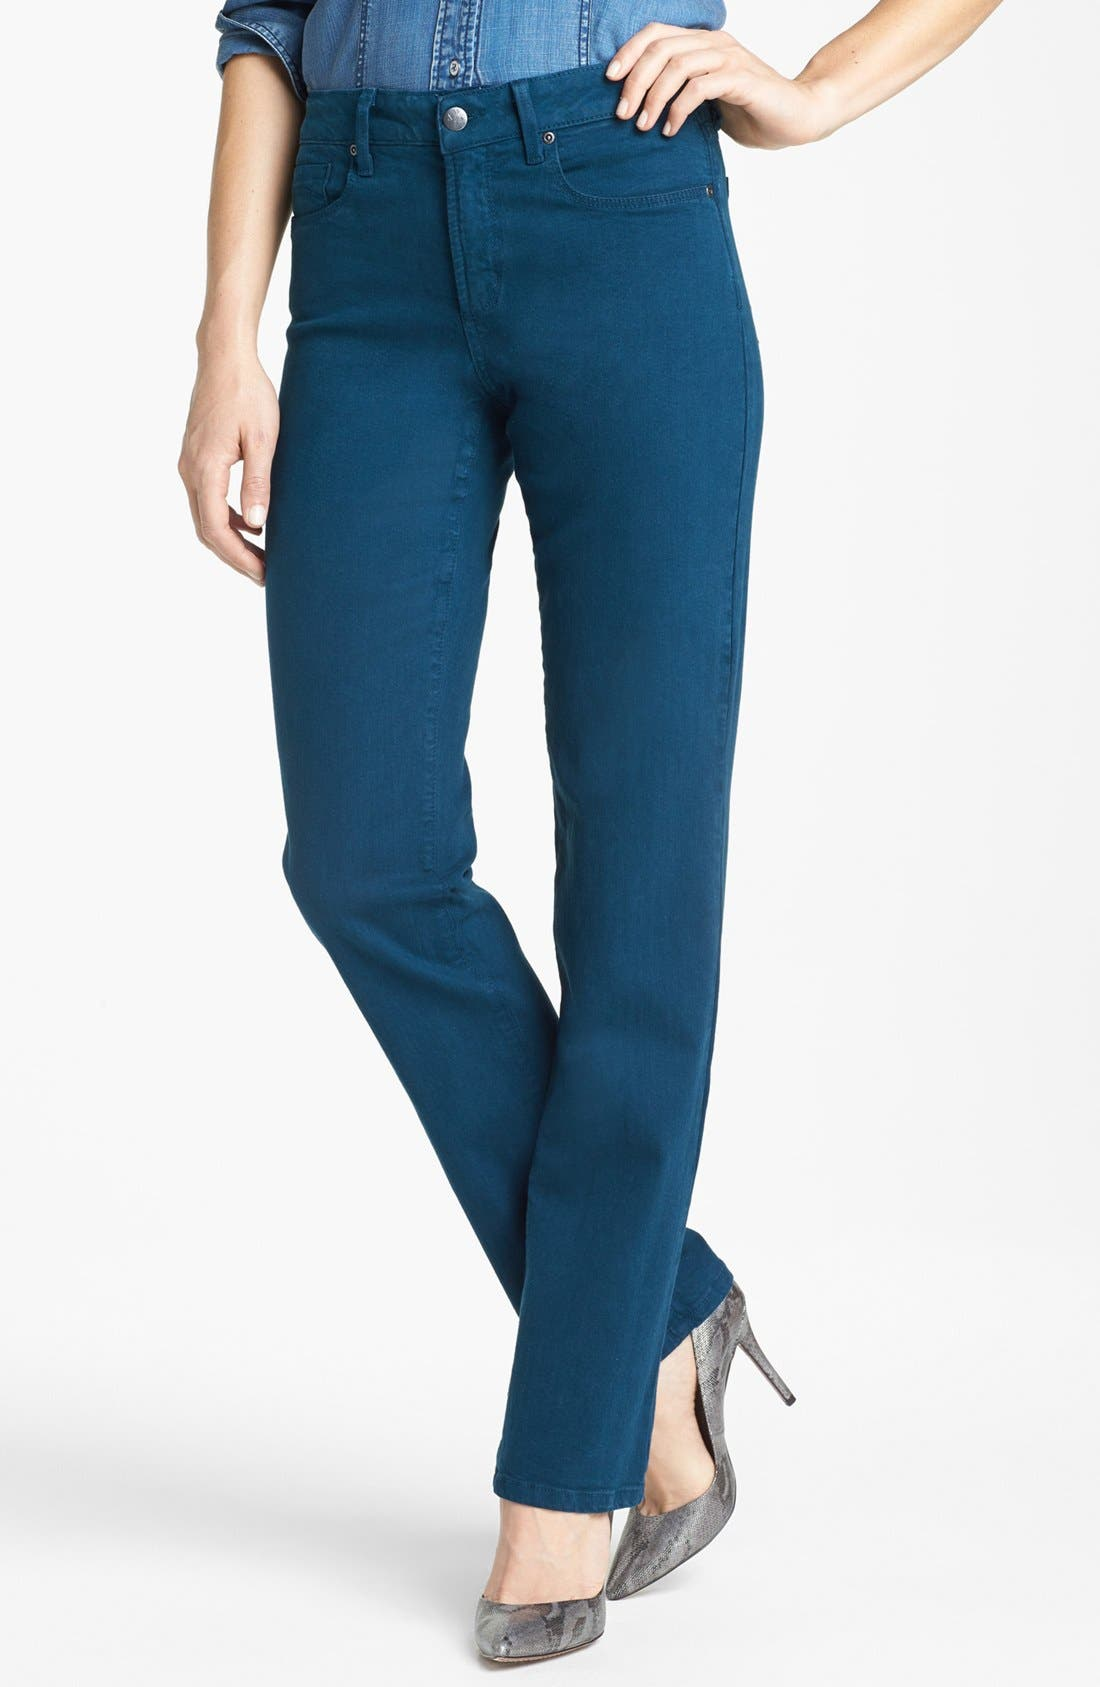 Alternate Image 1 Selected - NYDJ 'Marilyn' Colored Stretch Straight Leg Jeans